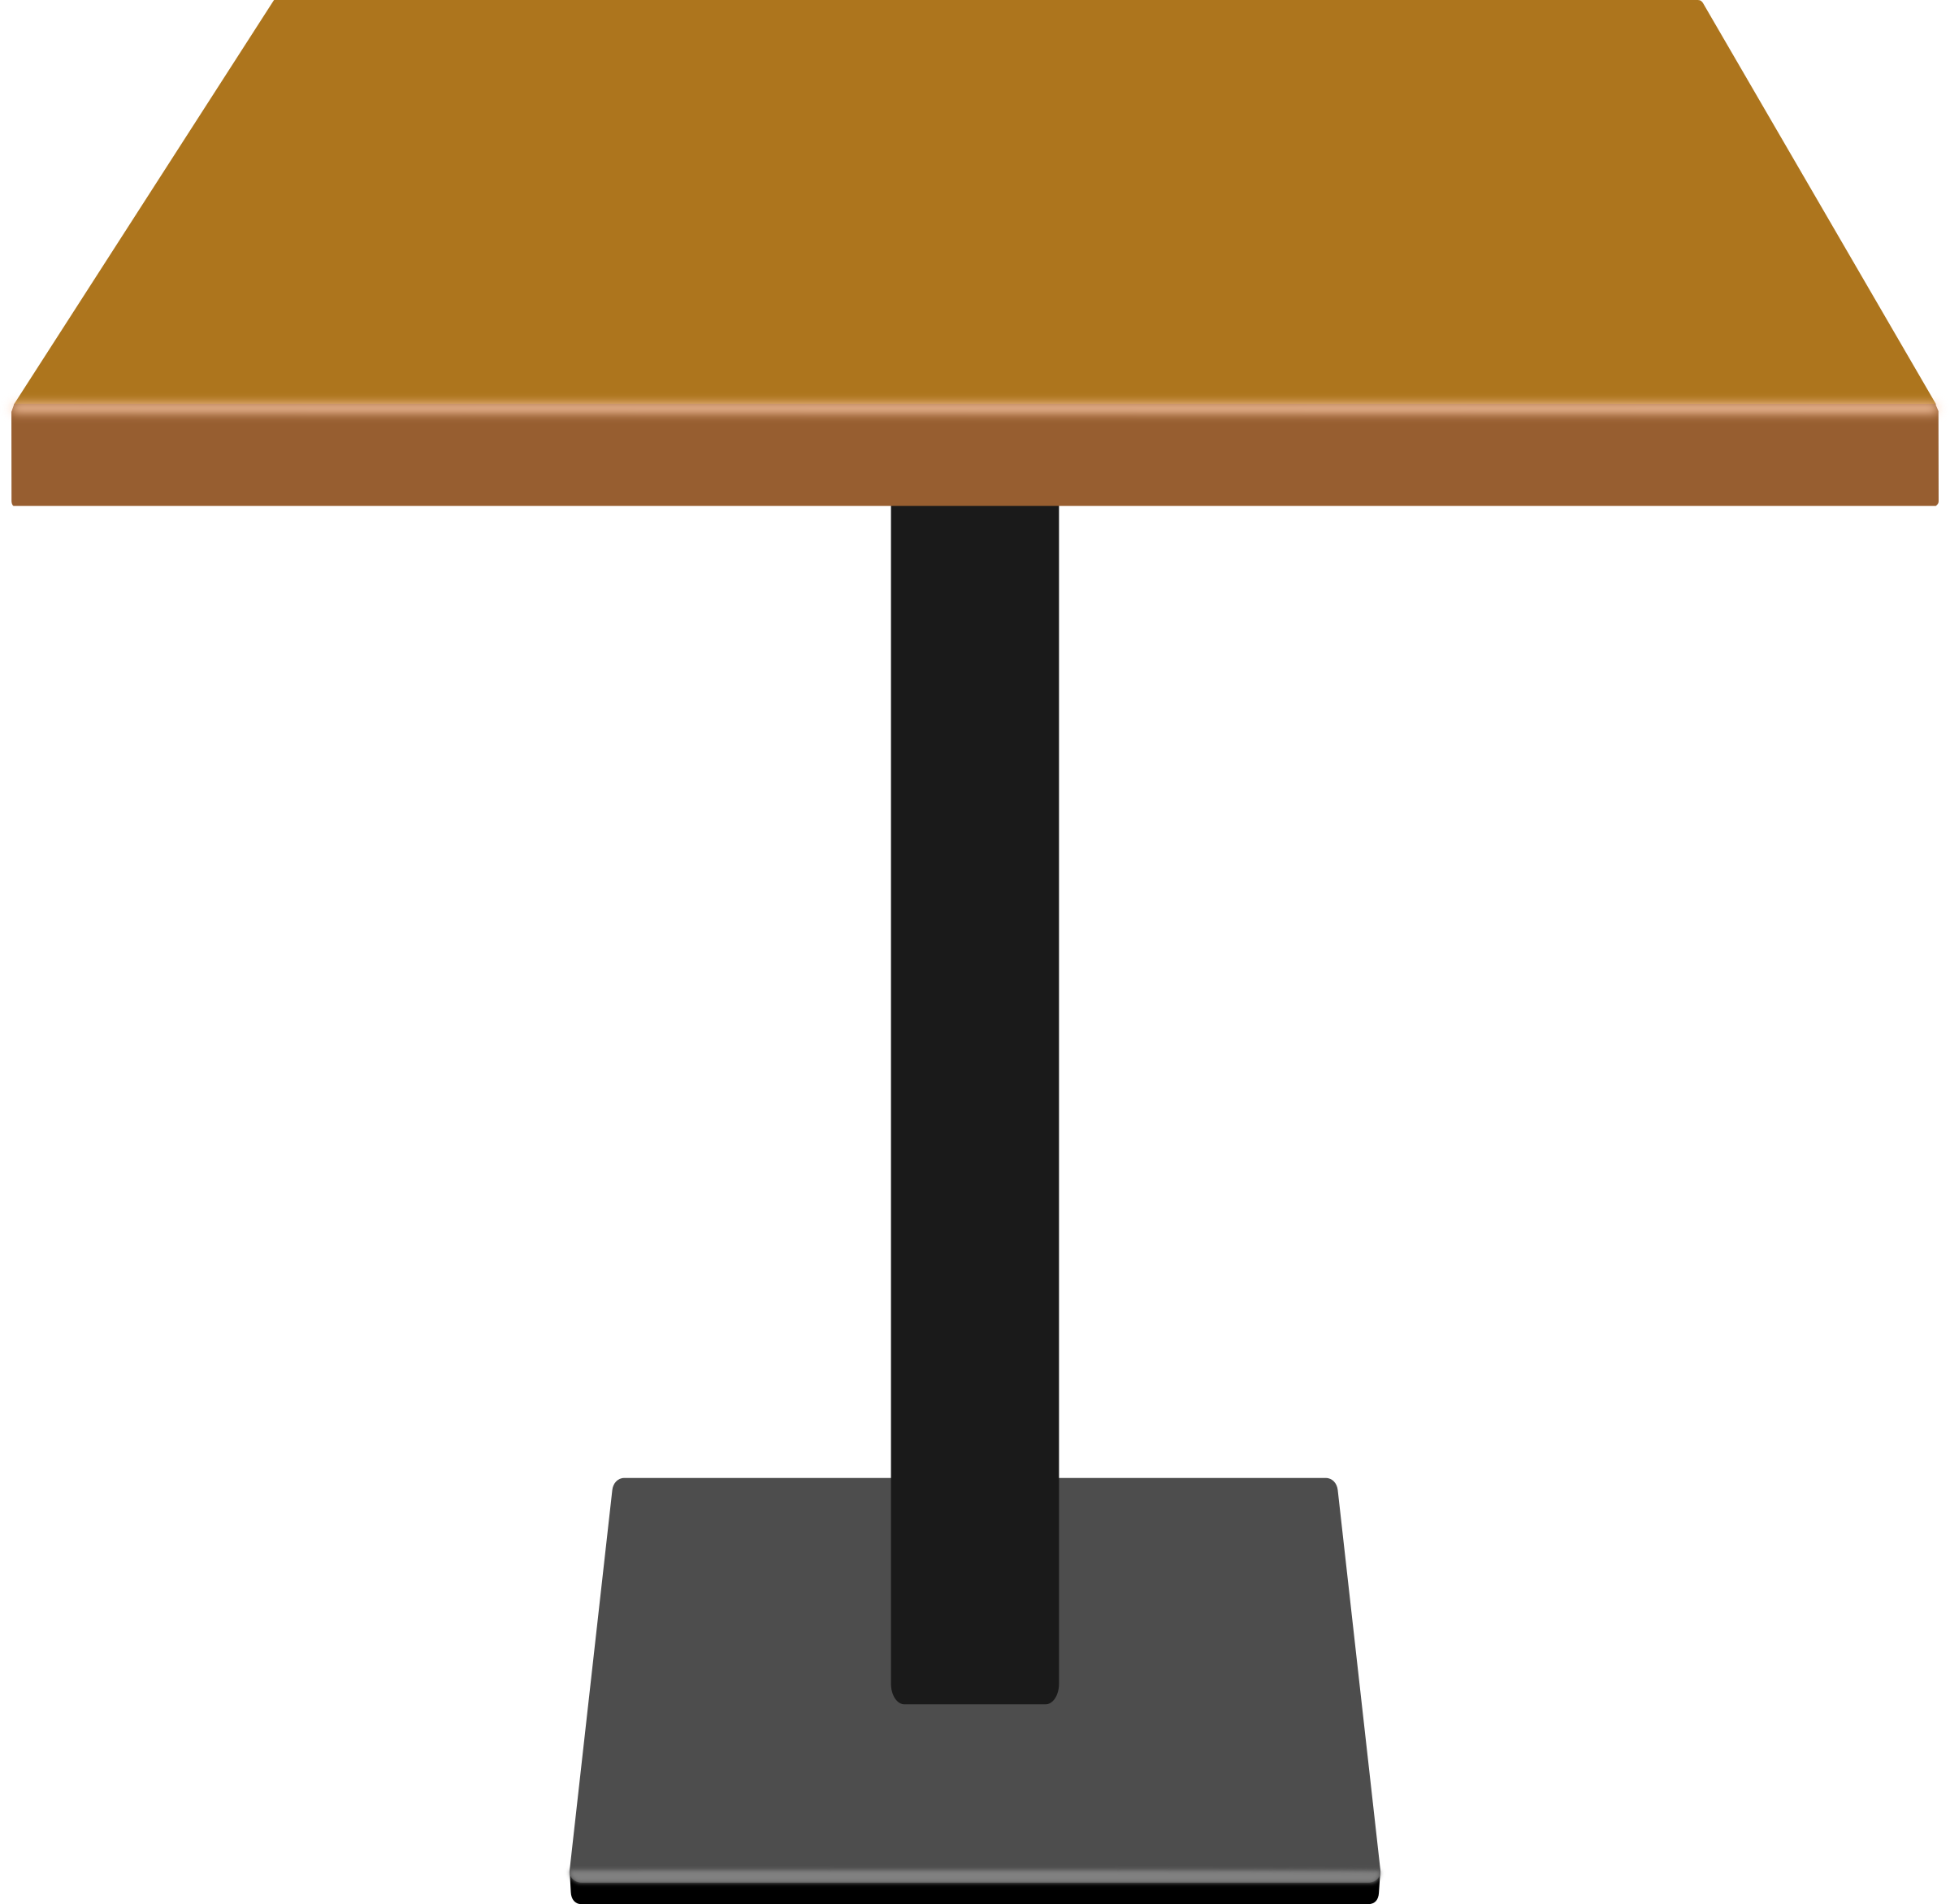 Side view of a house clipart picture freeuse download Table Clipart. BIG IMAGE (PNG) Table Clipart E - Deltasport.co picture freeuse download